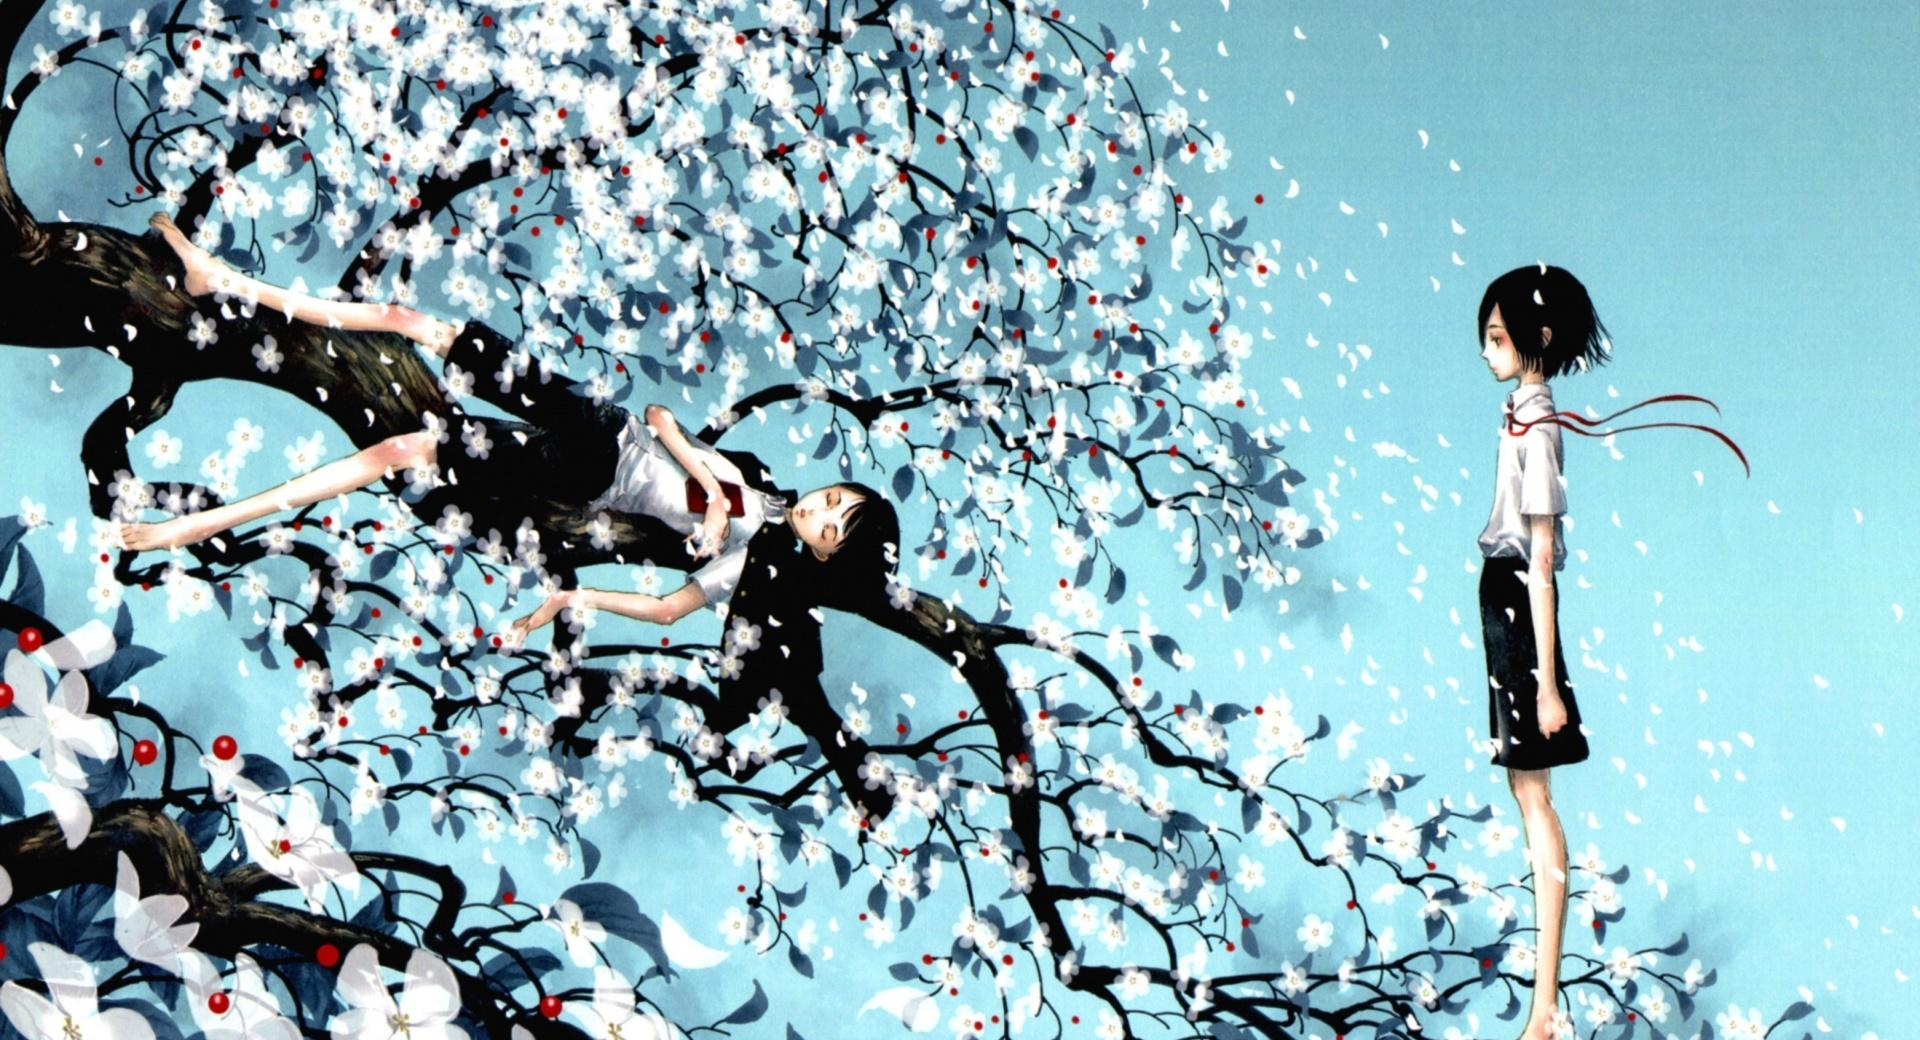 Blowing Wind Illustration wallpapers HD quality